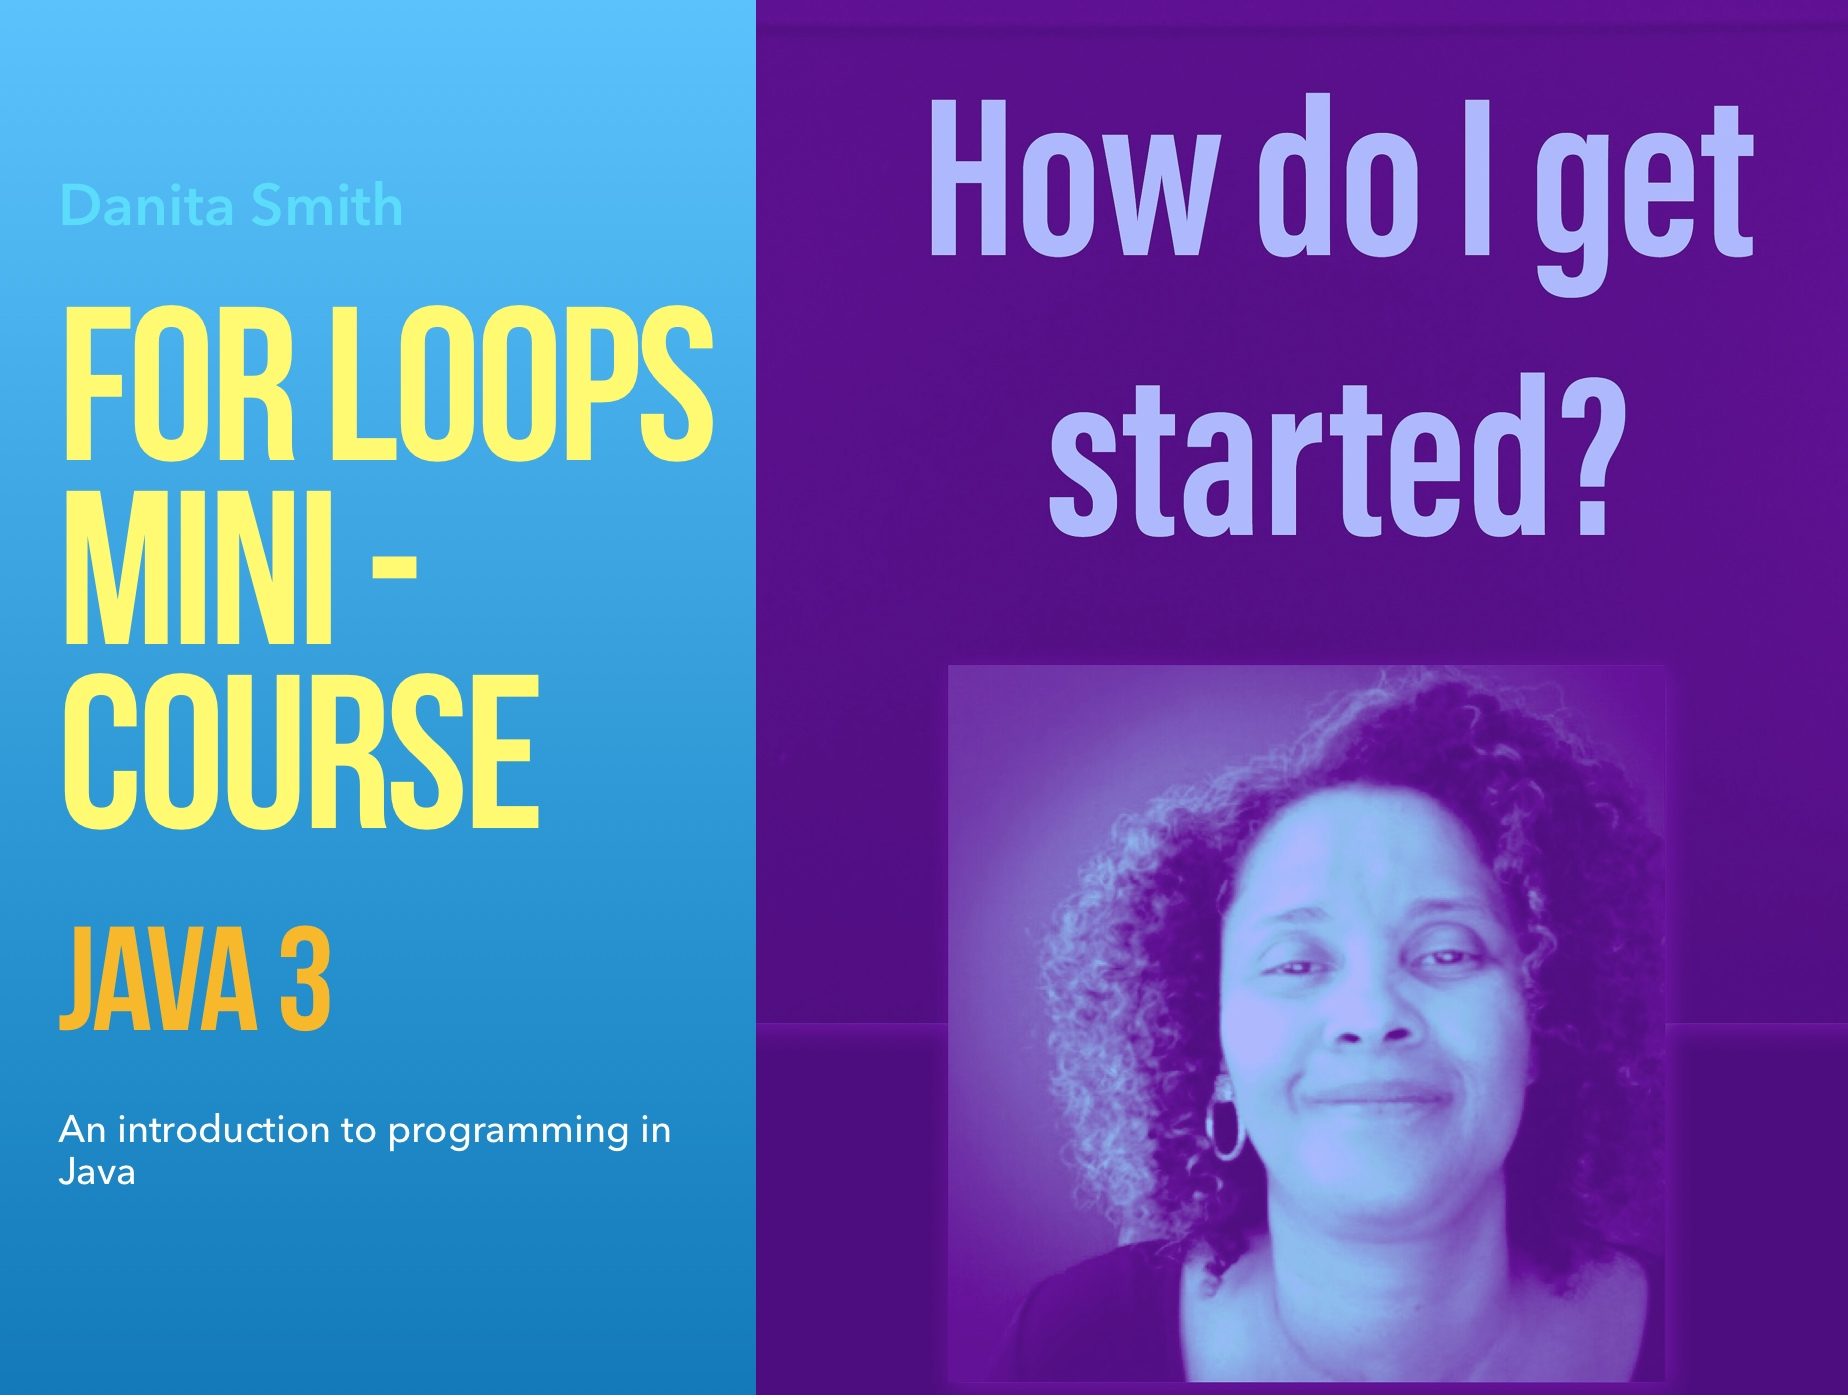 Mini-Course For Loops: Java 3